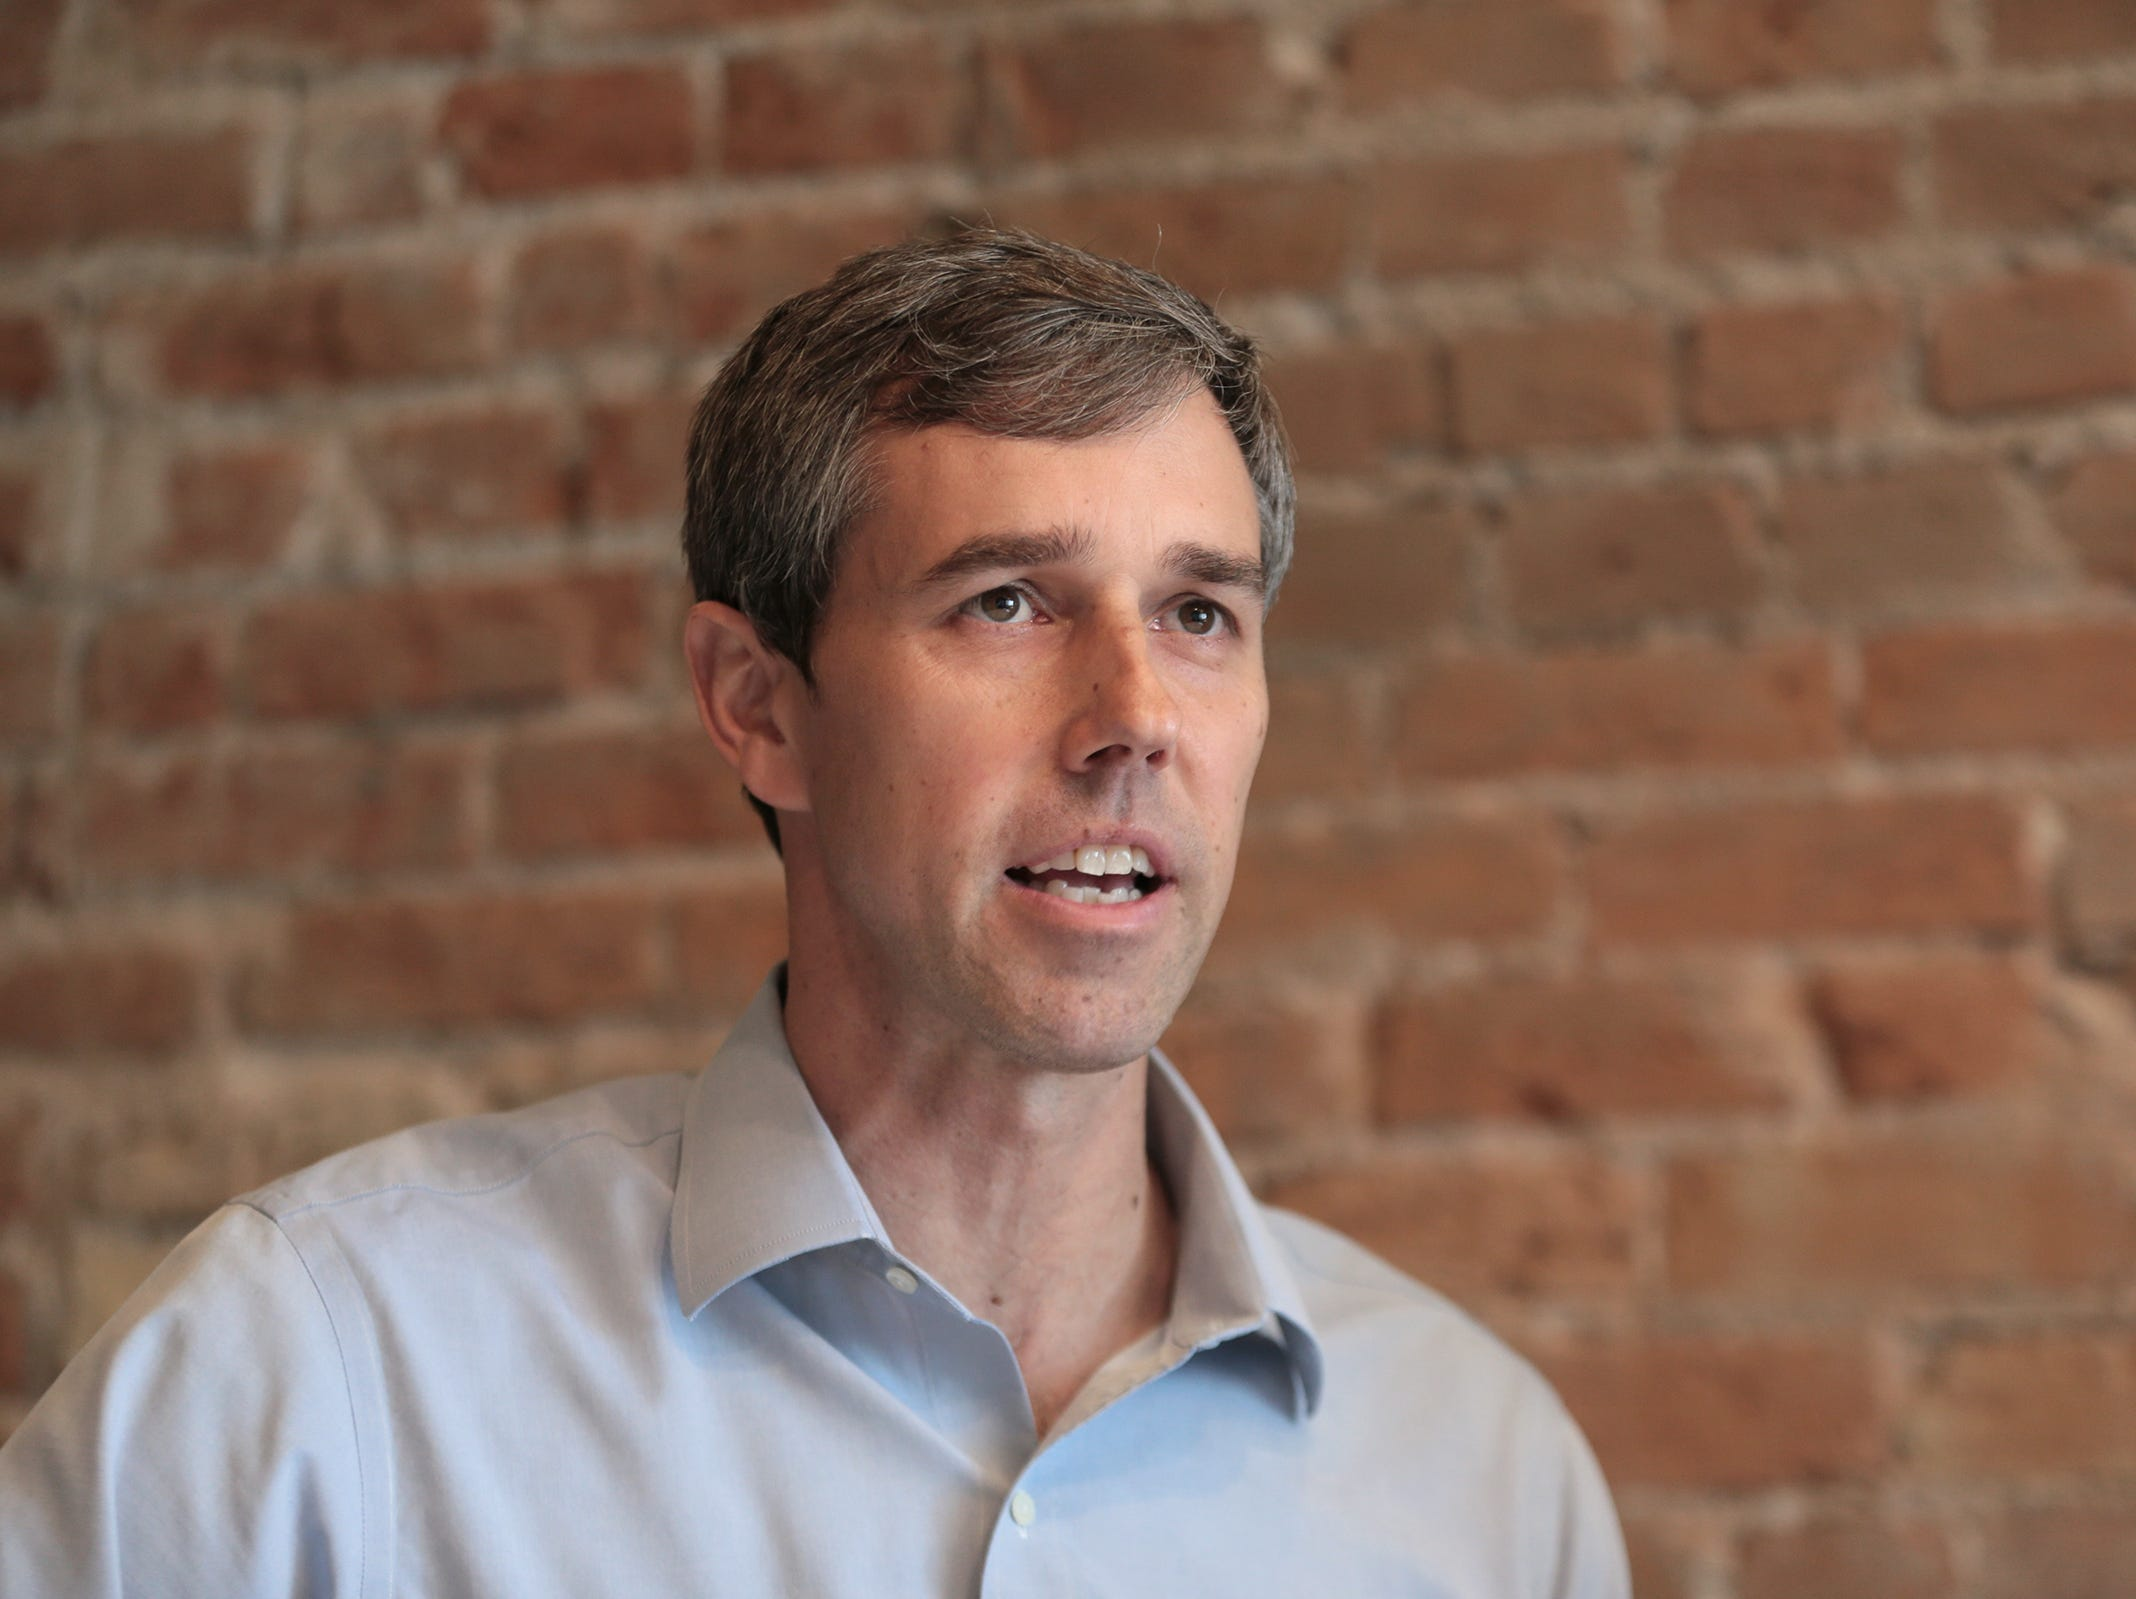 Beto O'Rourke at his home.